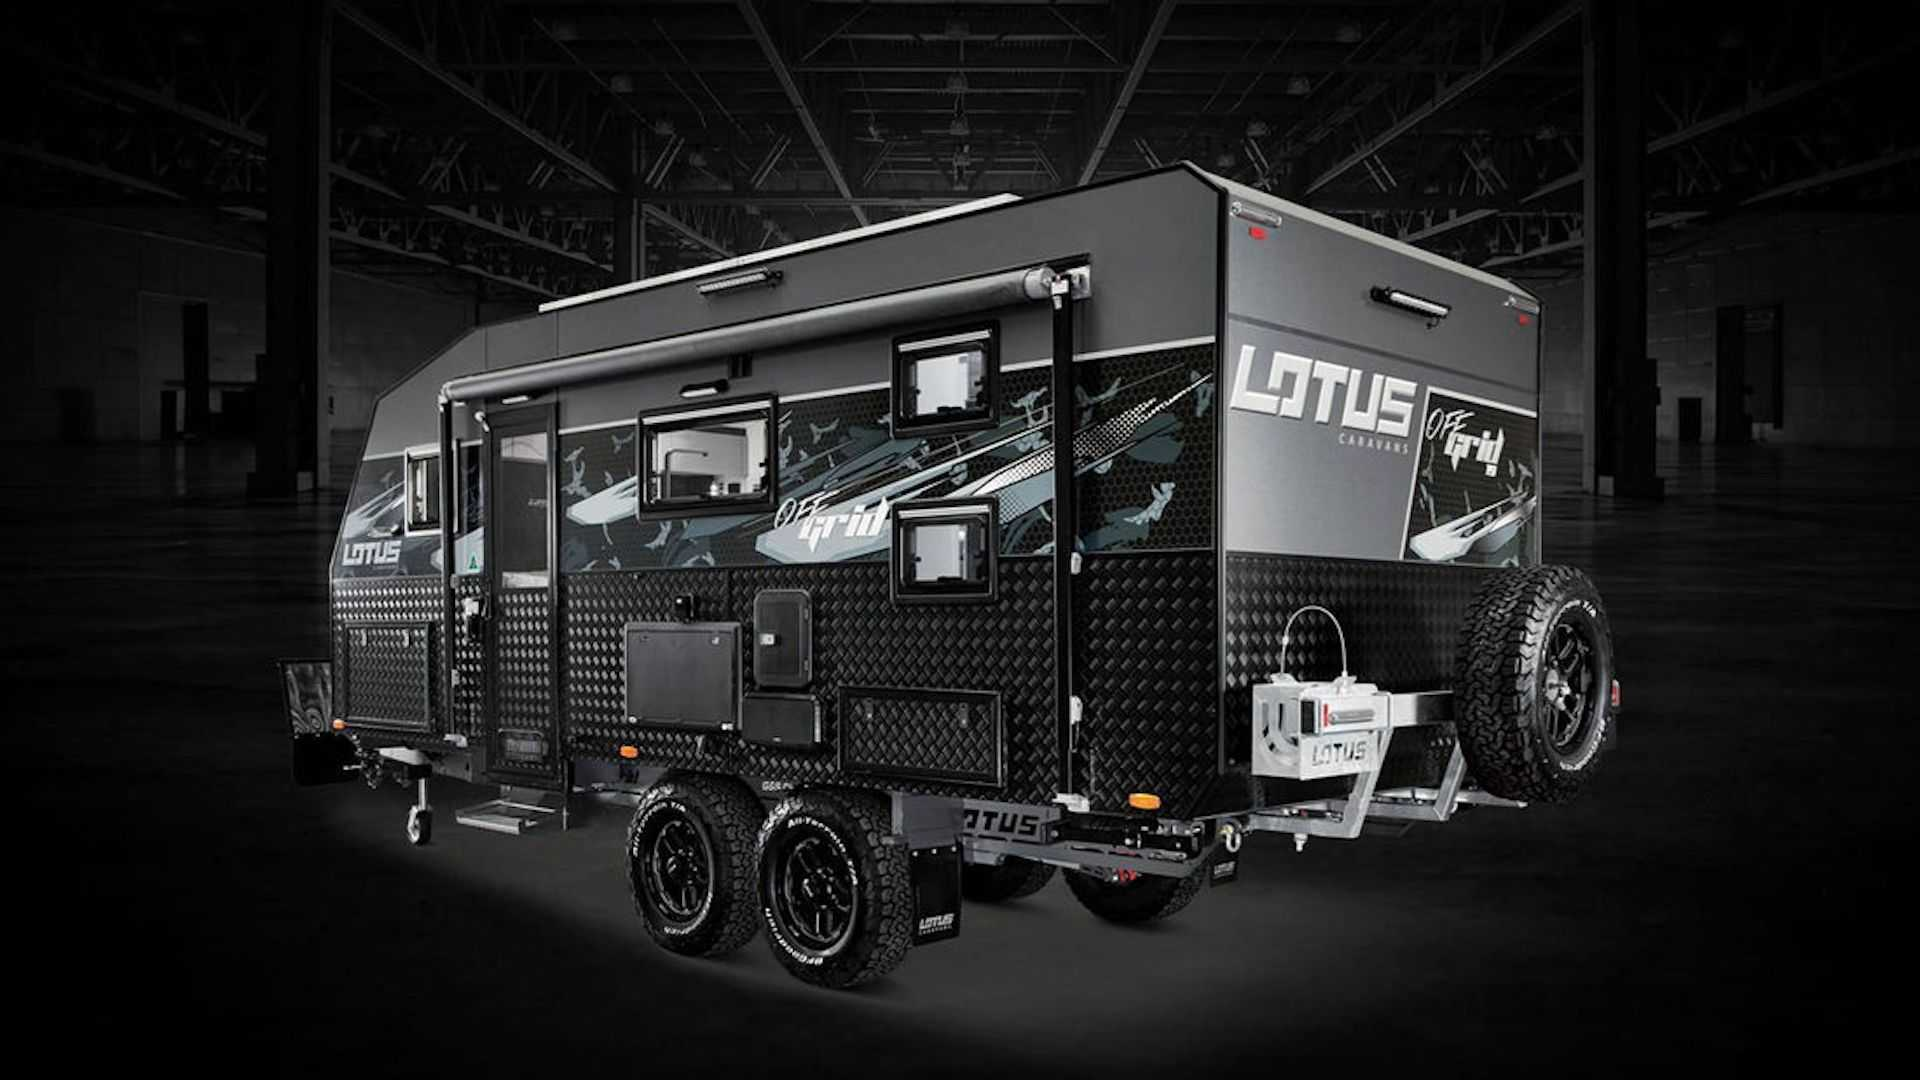 2020 Lotus Caravans Off Grid is a luxurious trailer for family trips